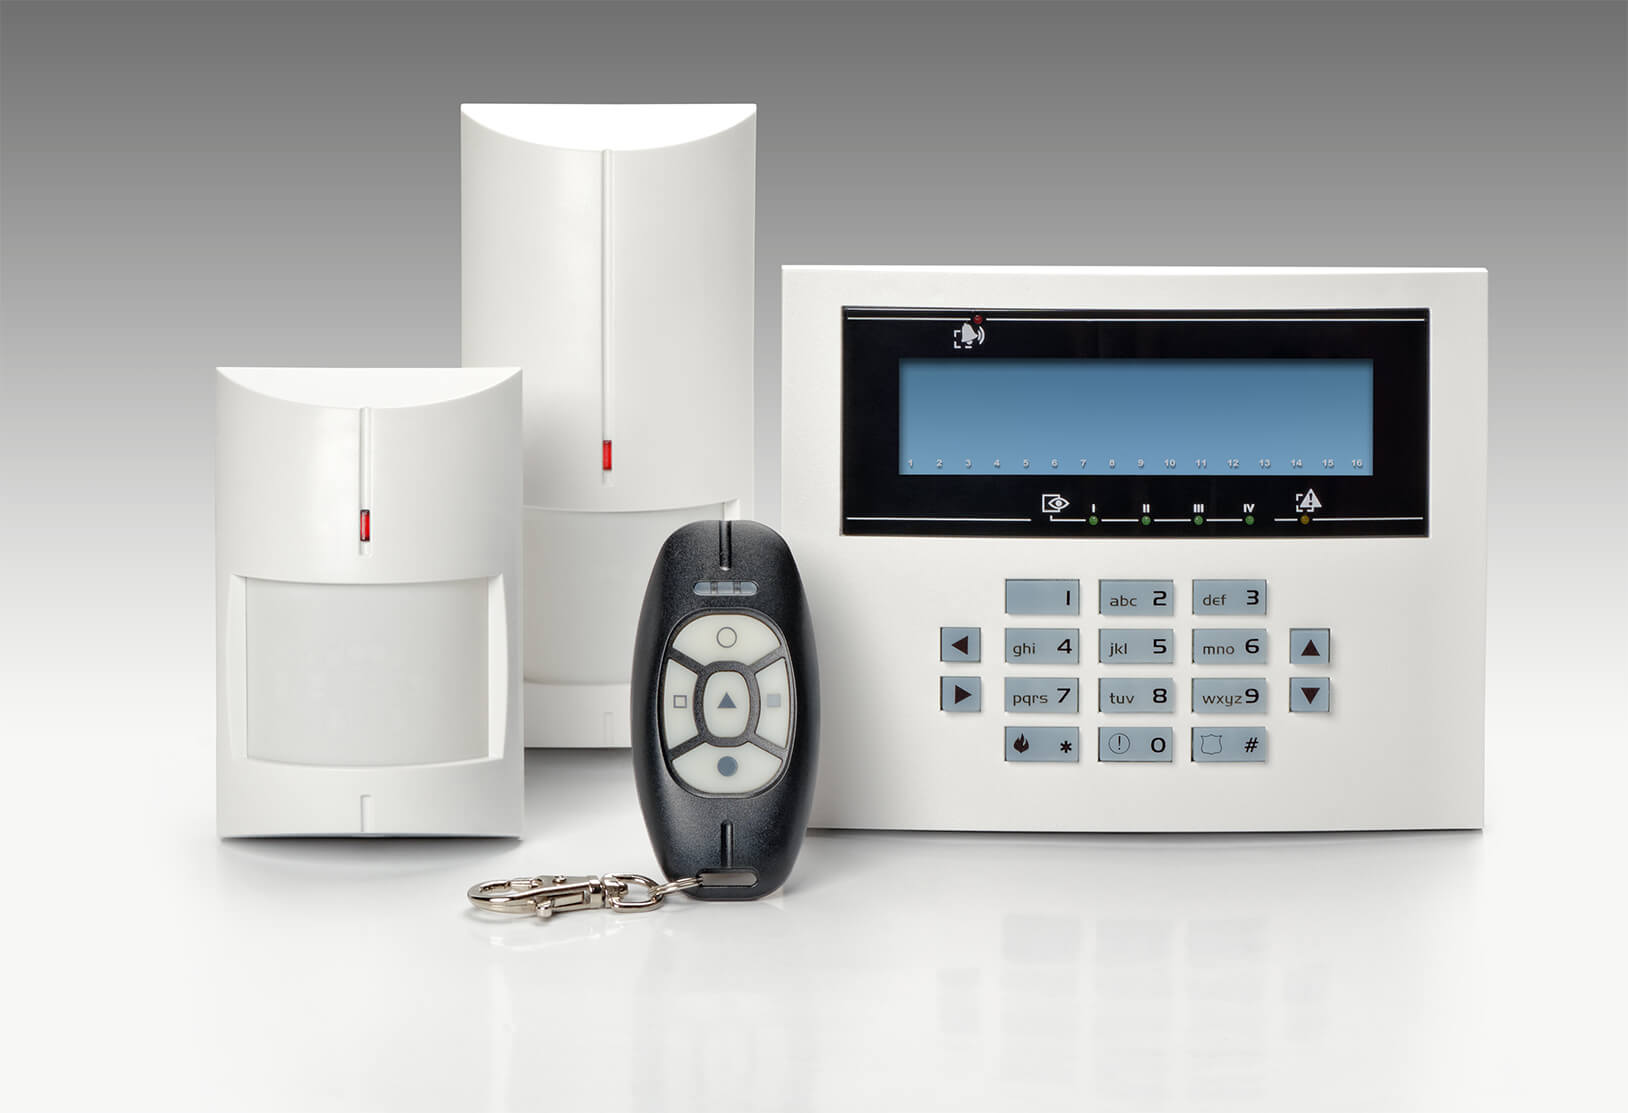 Business & Residential NACOSS Approved Burglar Alarms In Paddington W9 - Local Paddington W9 security company.Call 02078872244 - Dedicated to Safety & Security. Companies, shops and homes ..